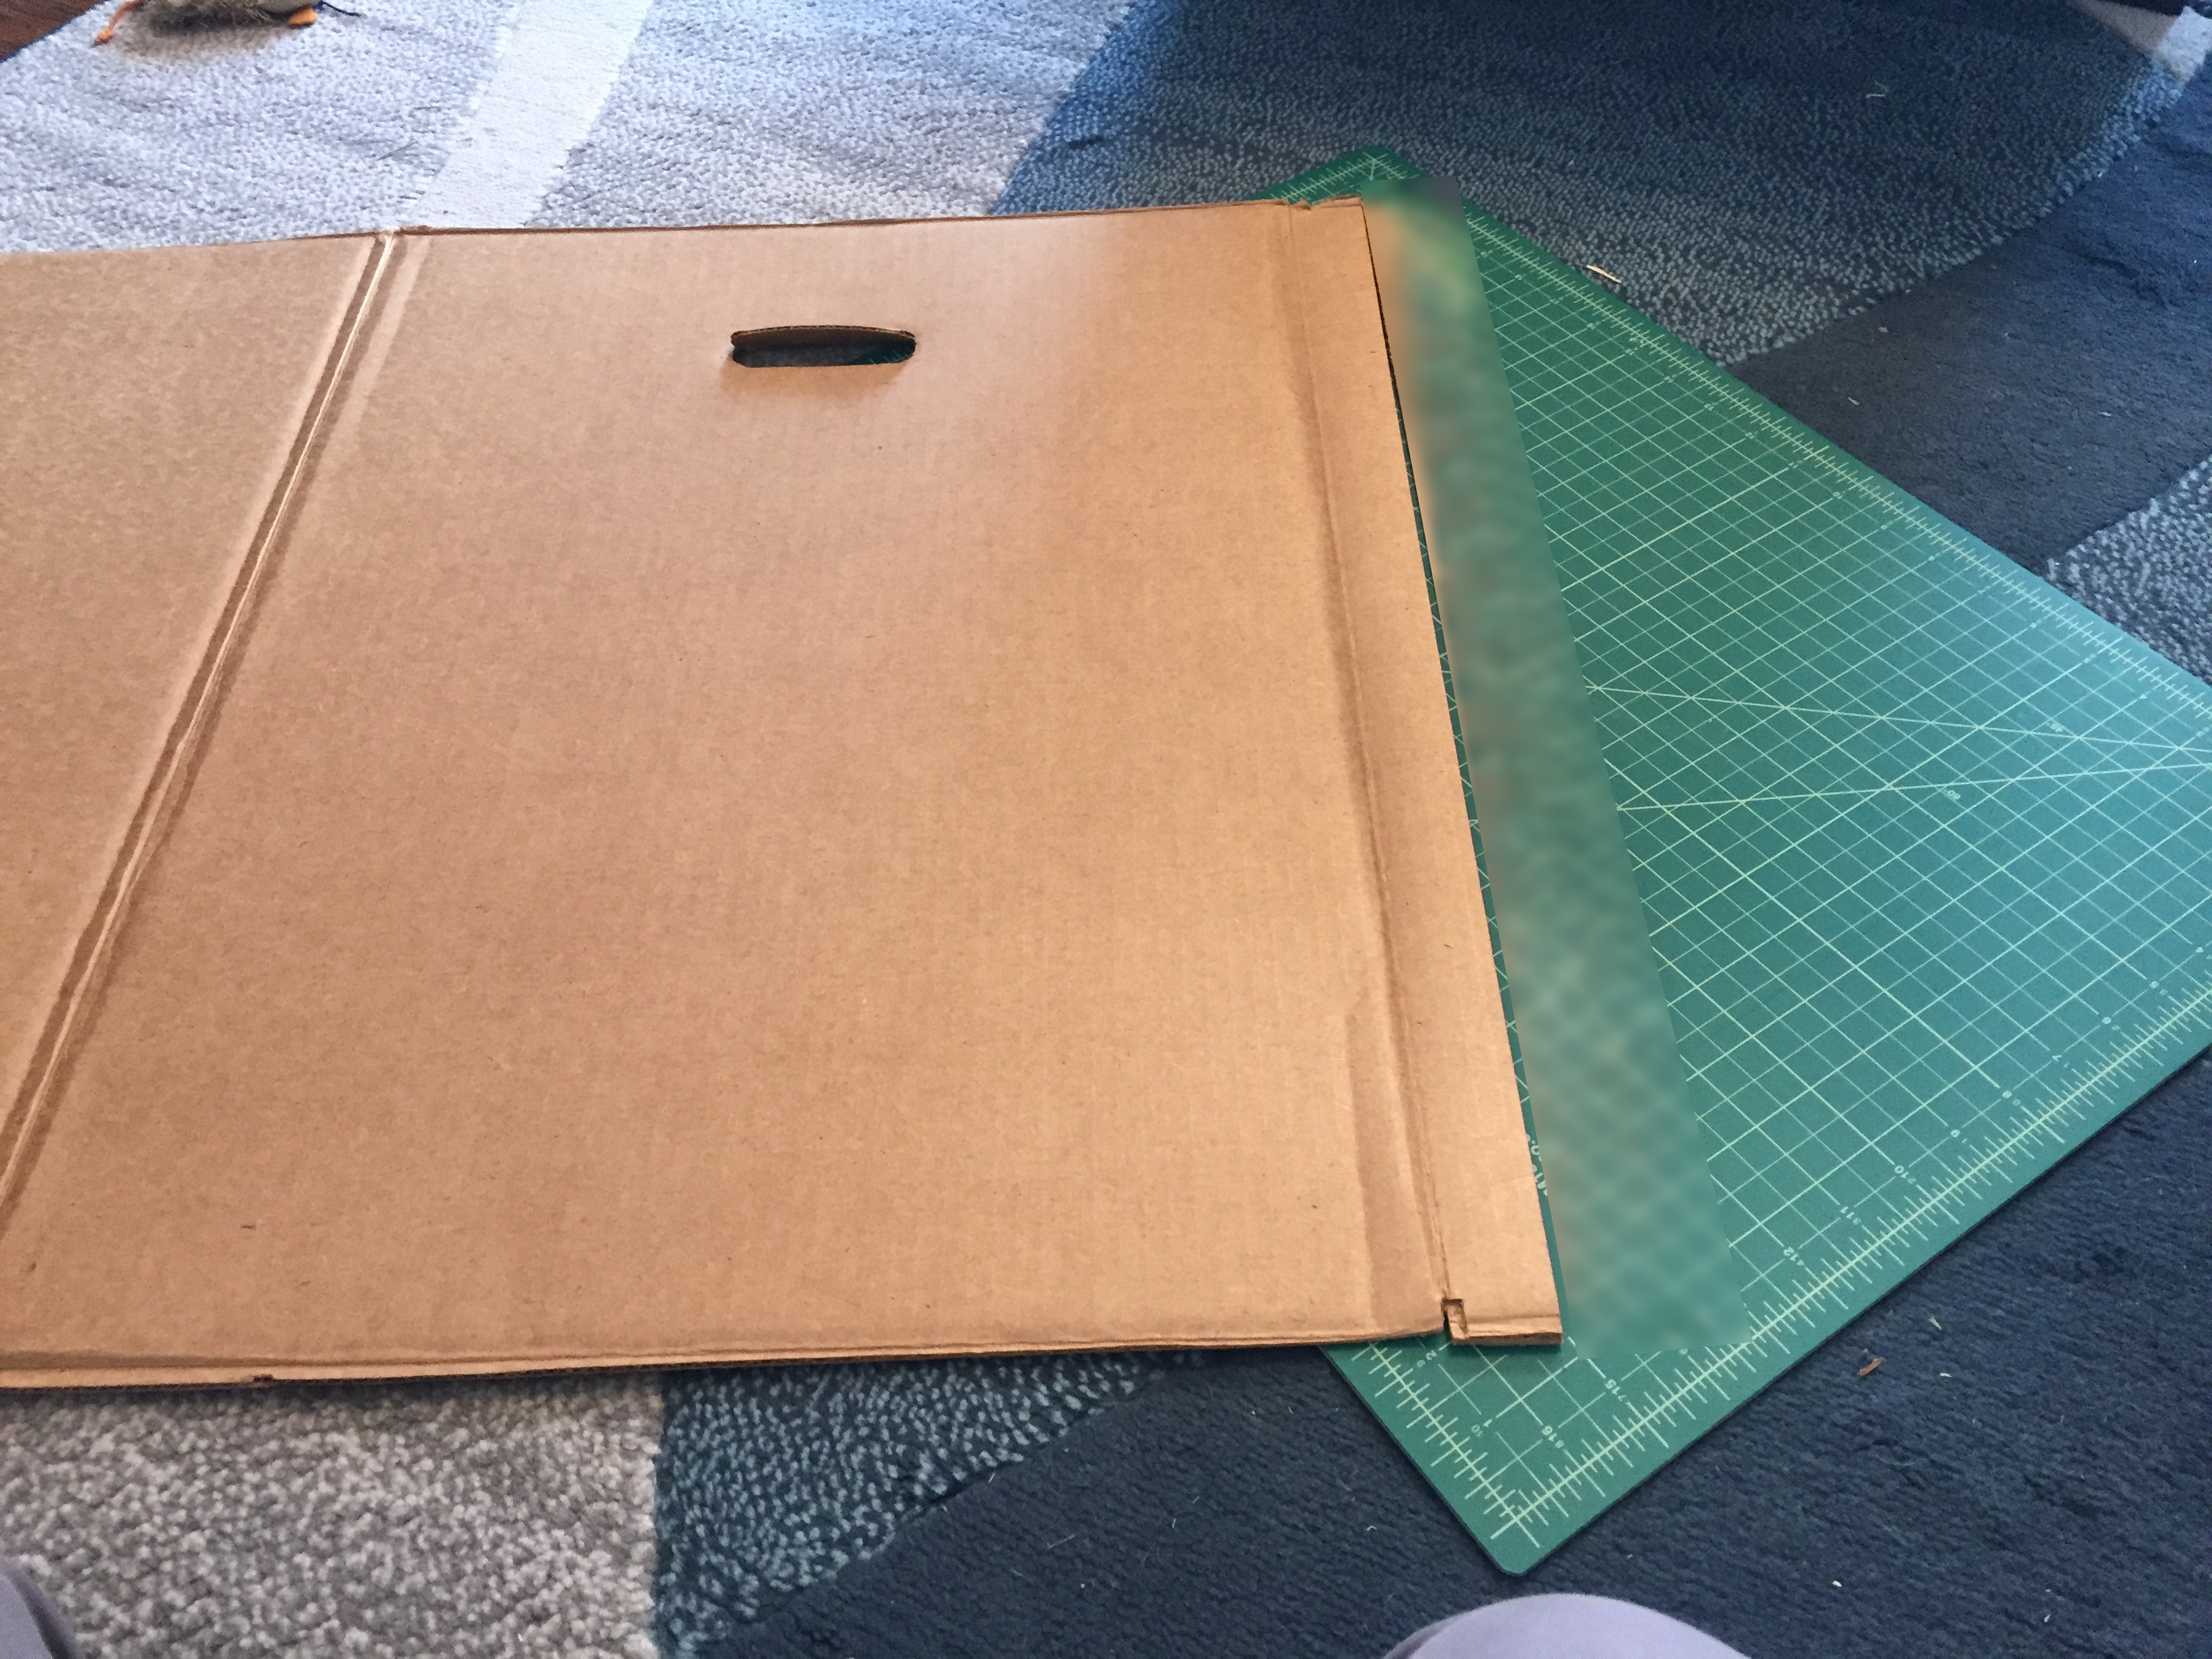 Picture of Resize Box (A) – Cut Box Open